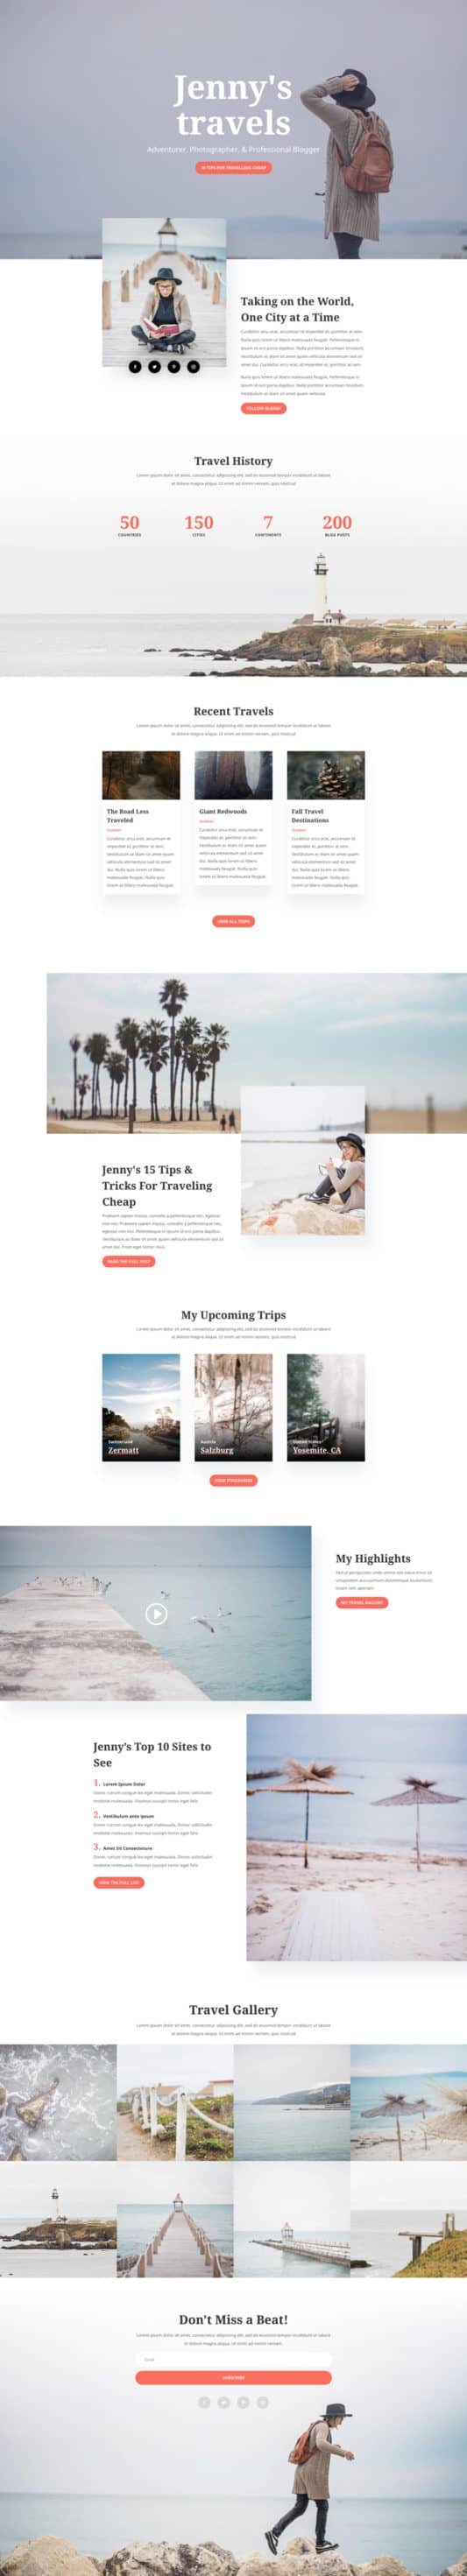 Travel Blog Web Design 5